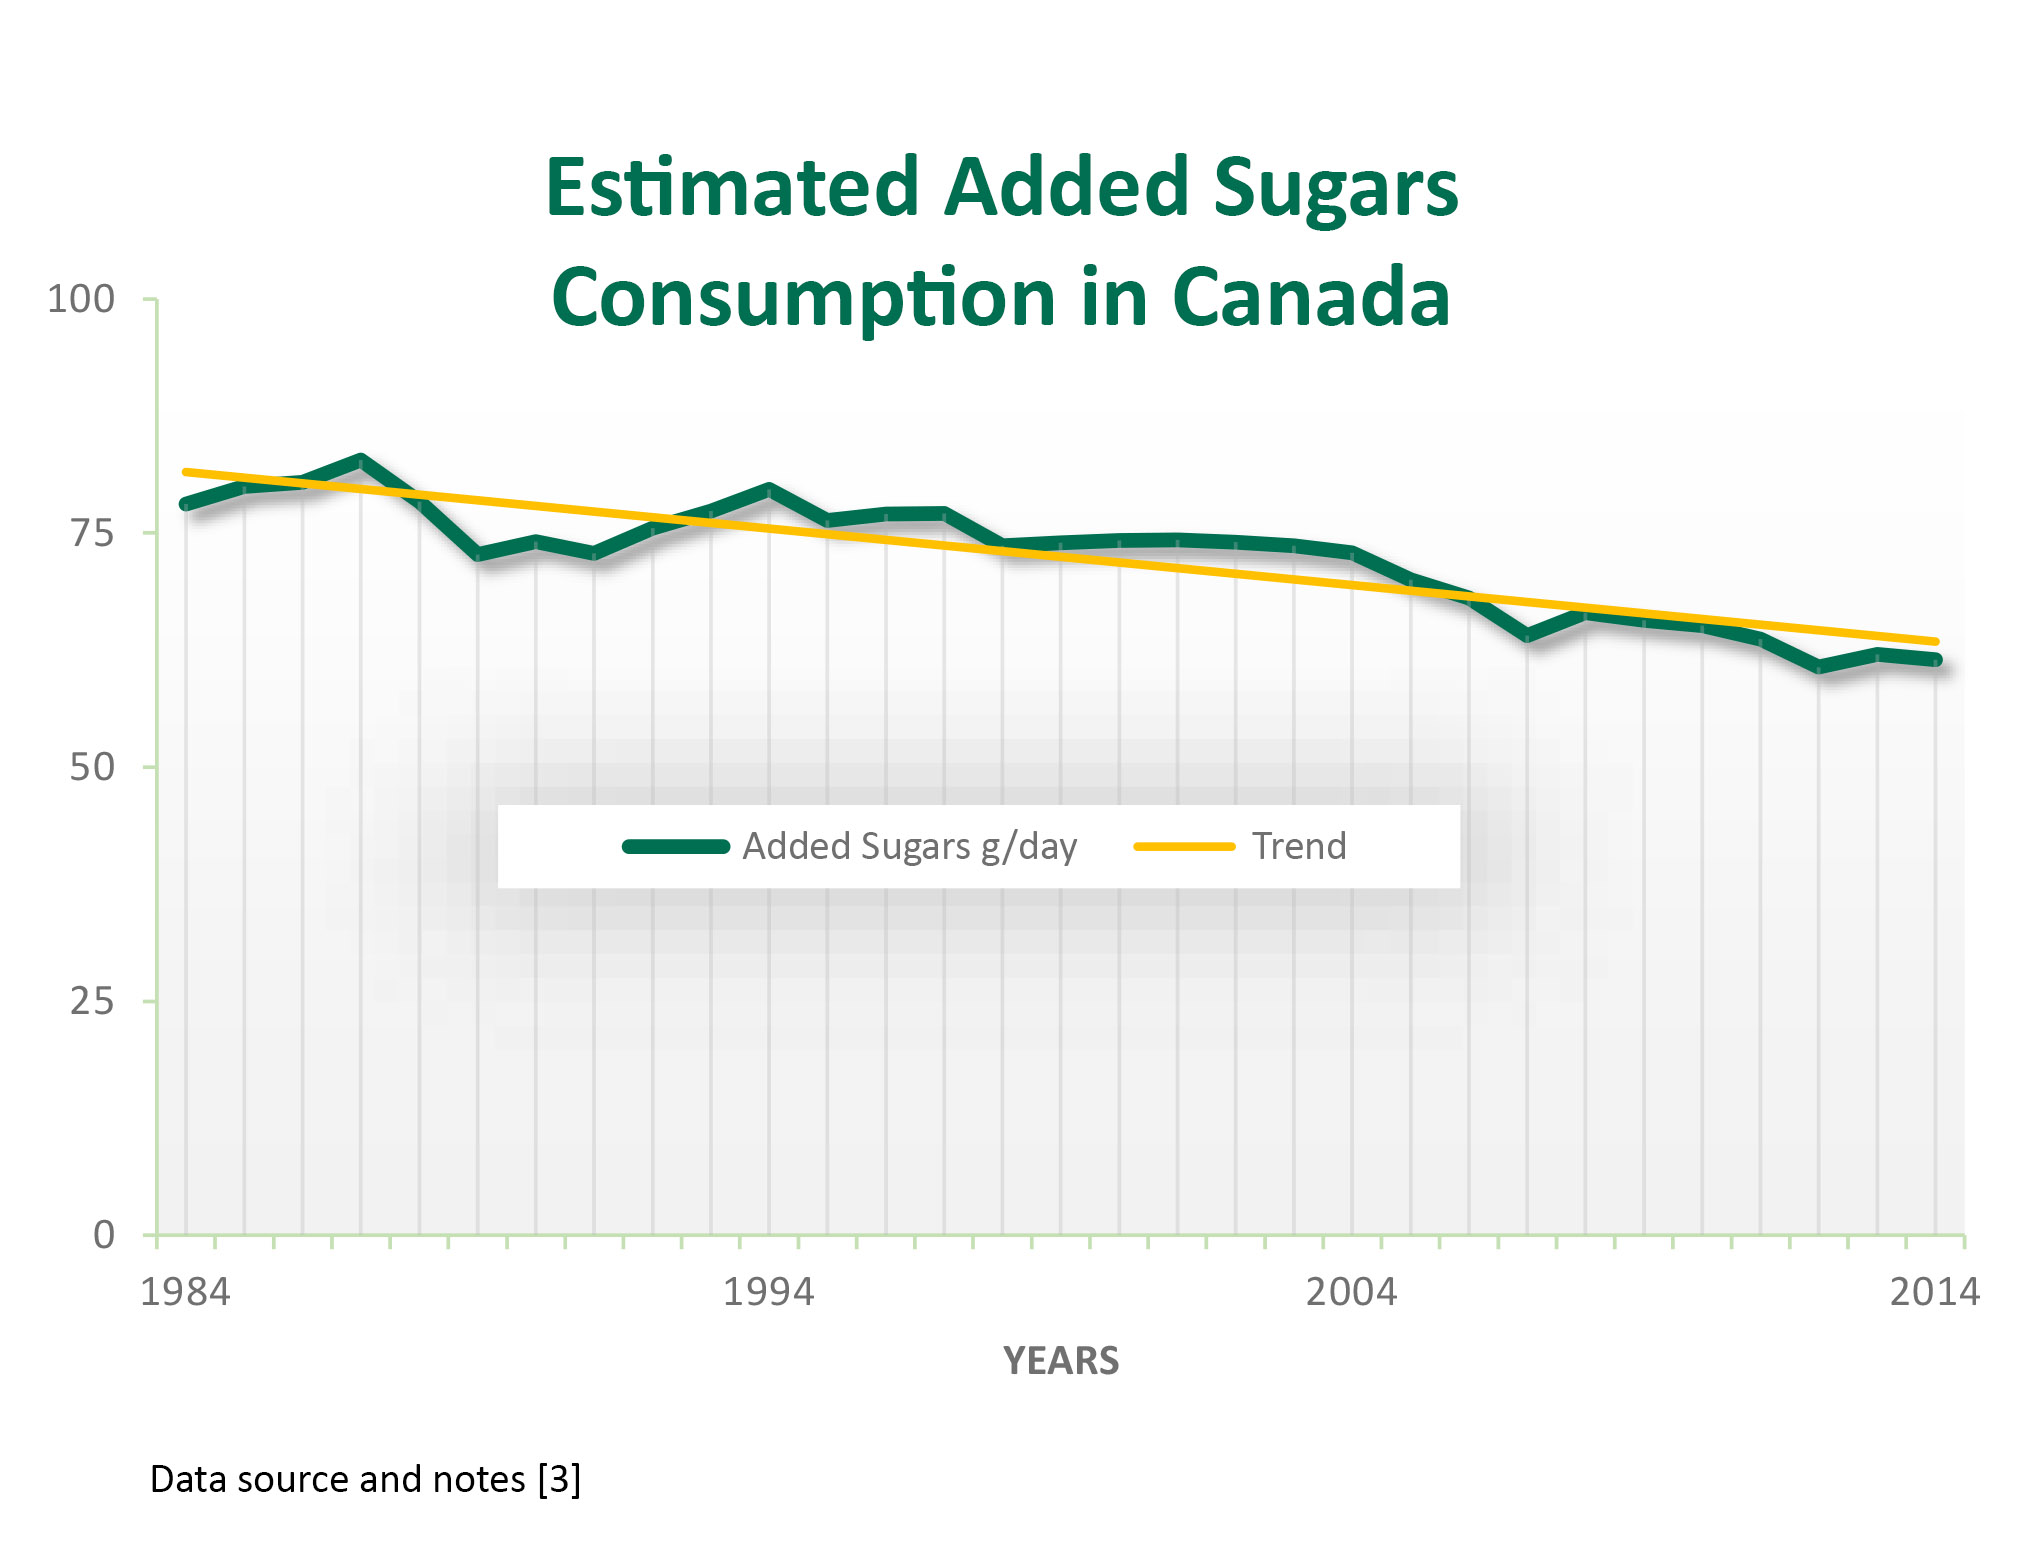 Declining trend in added sugars consumption in Canada